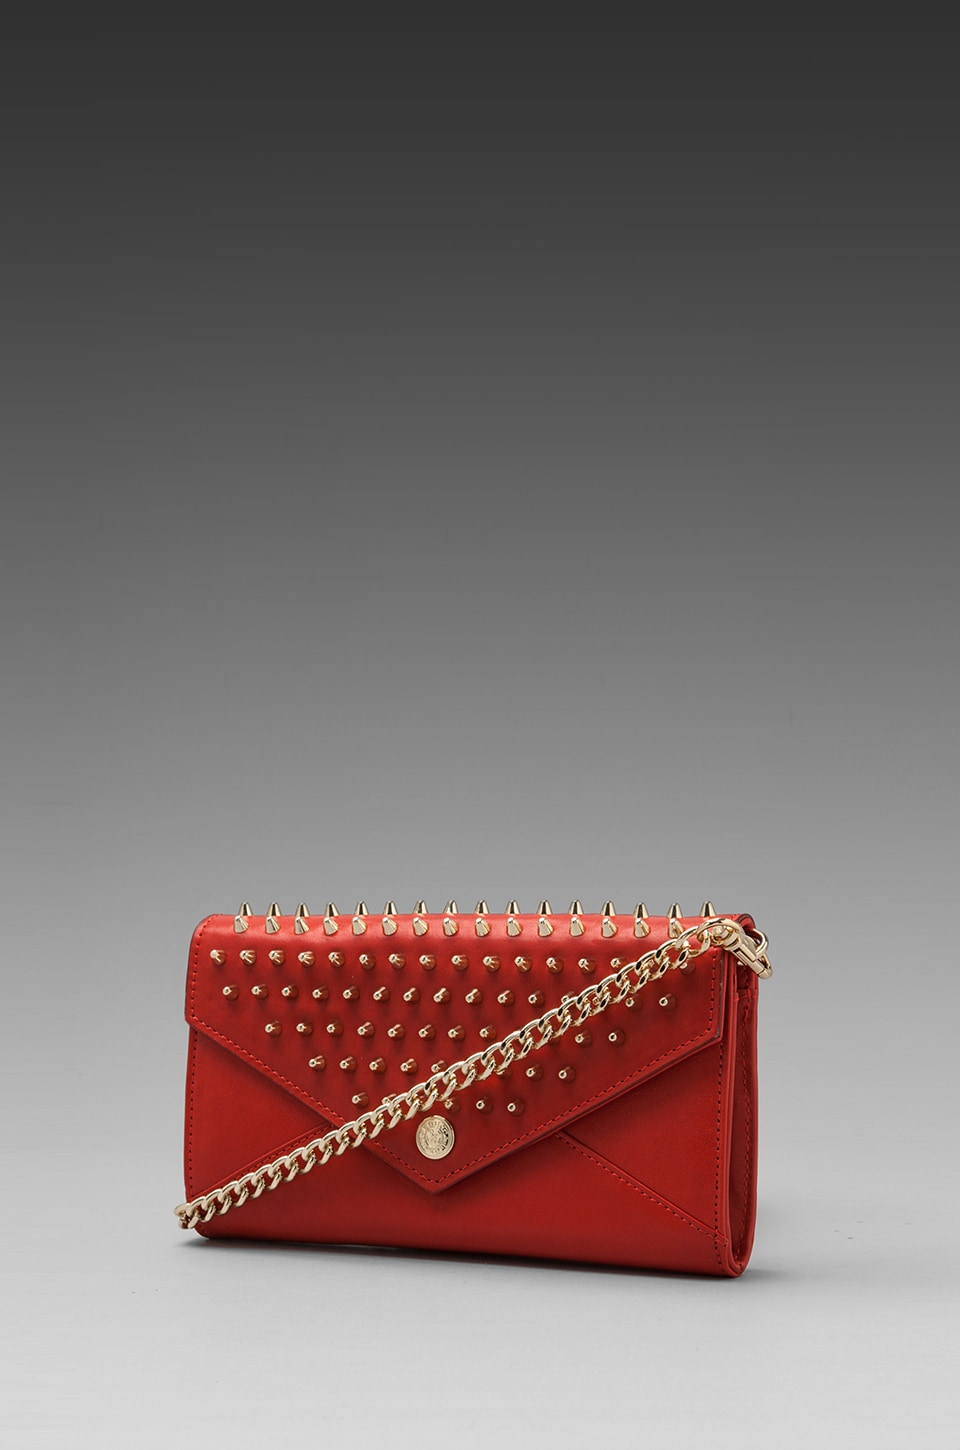 Rebecca Minkoff Chain Wallet with Studs in Fire Engine